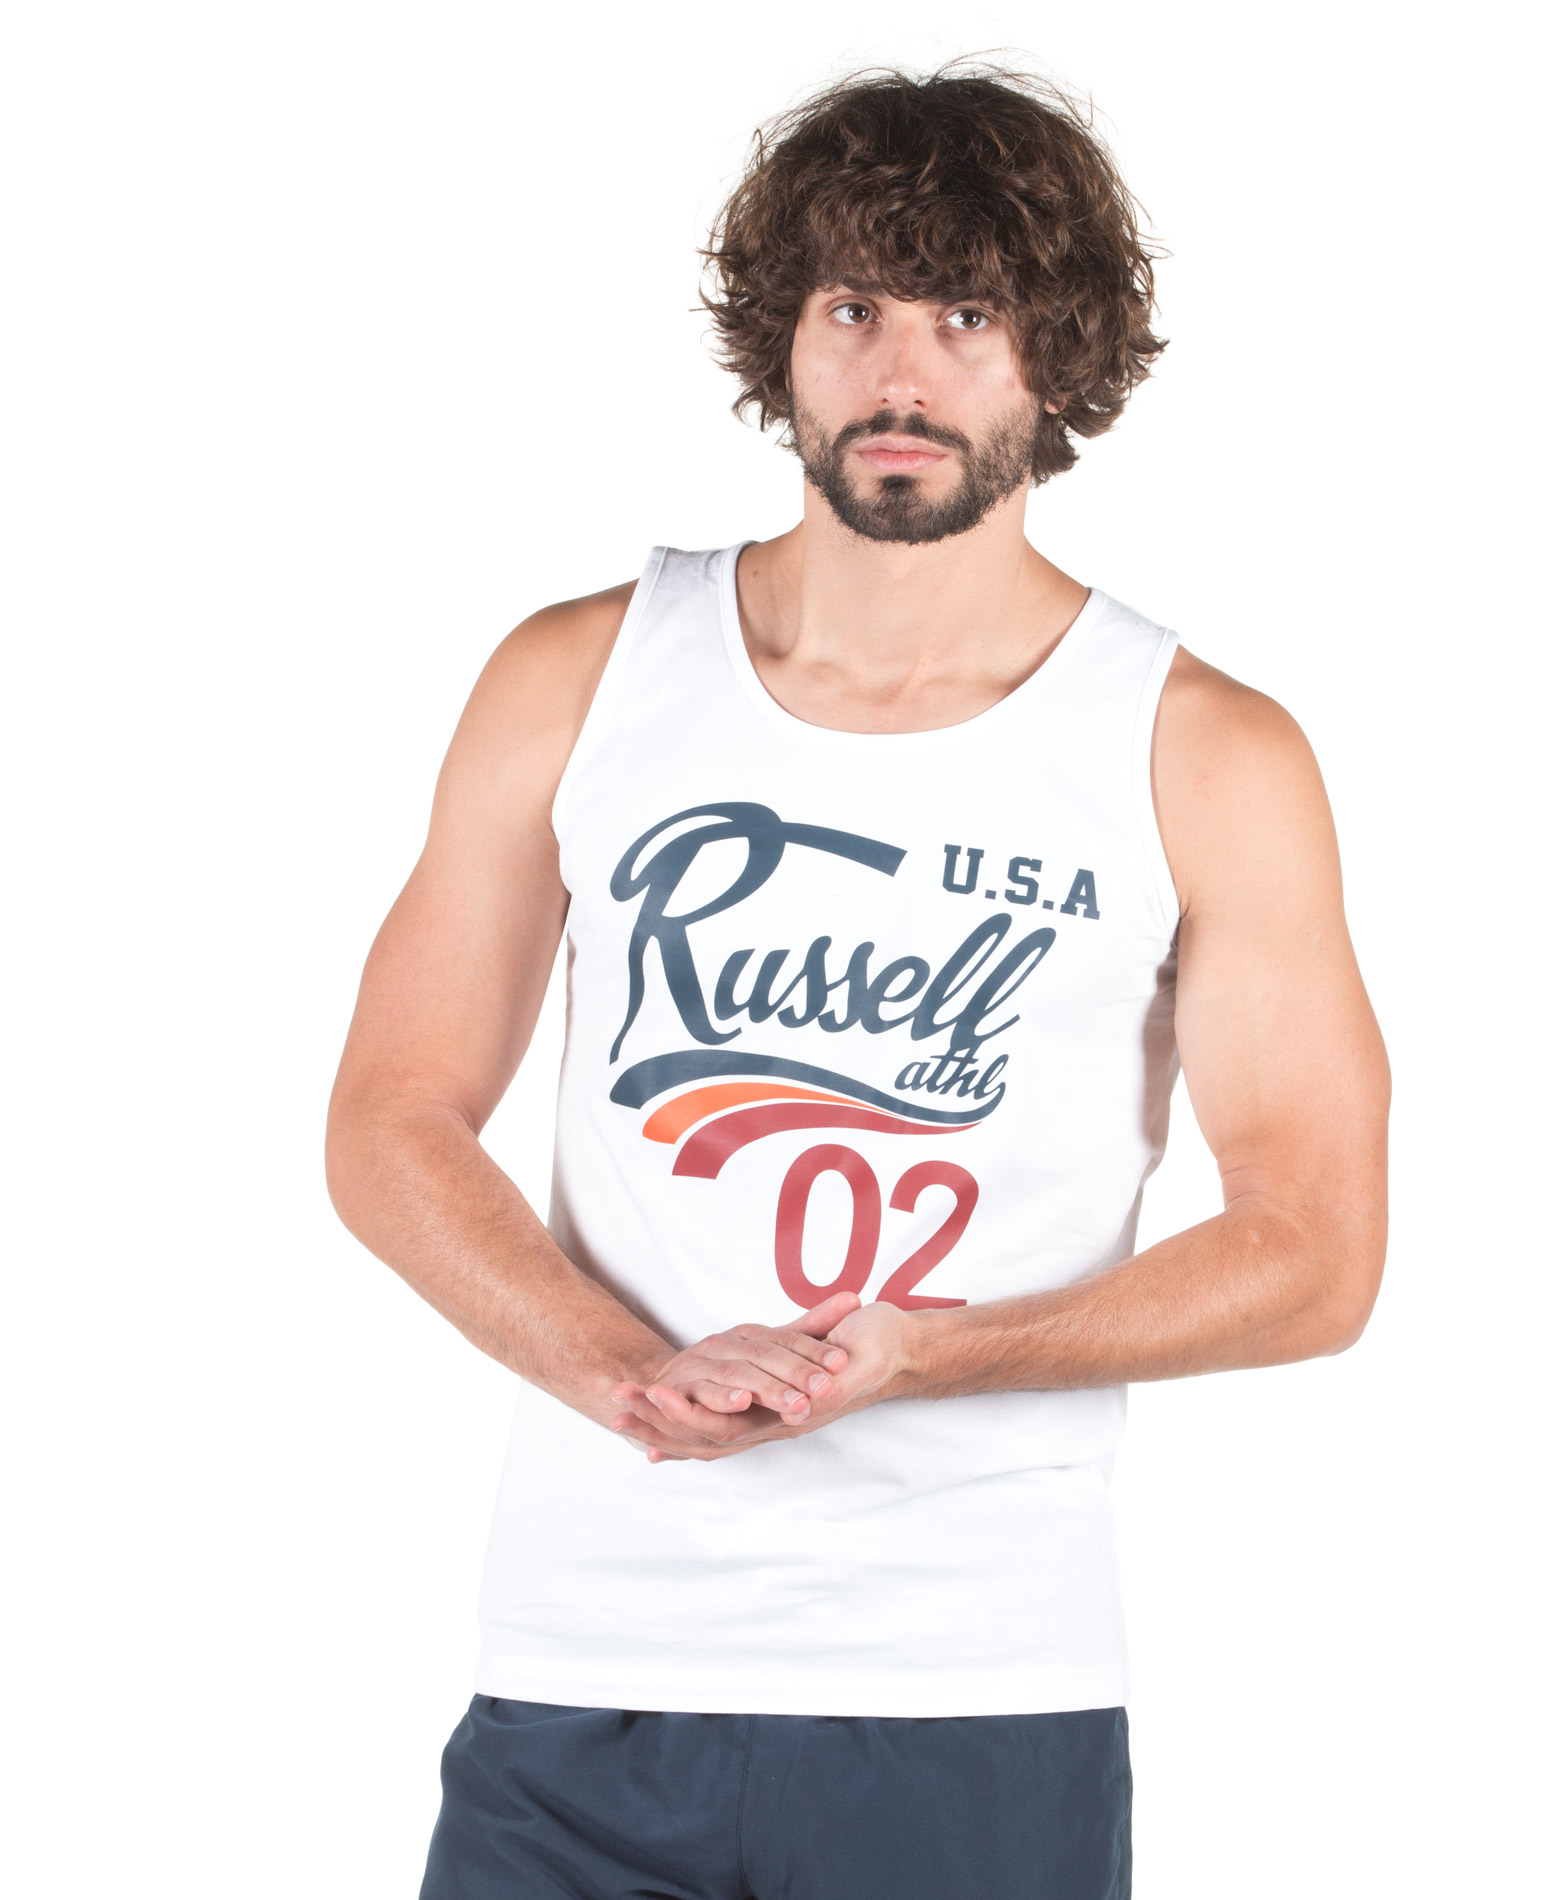 RUSSELL A7-034-1-001 Λευκό